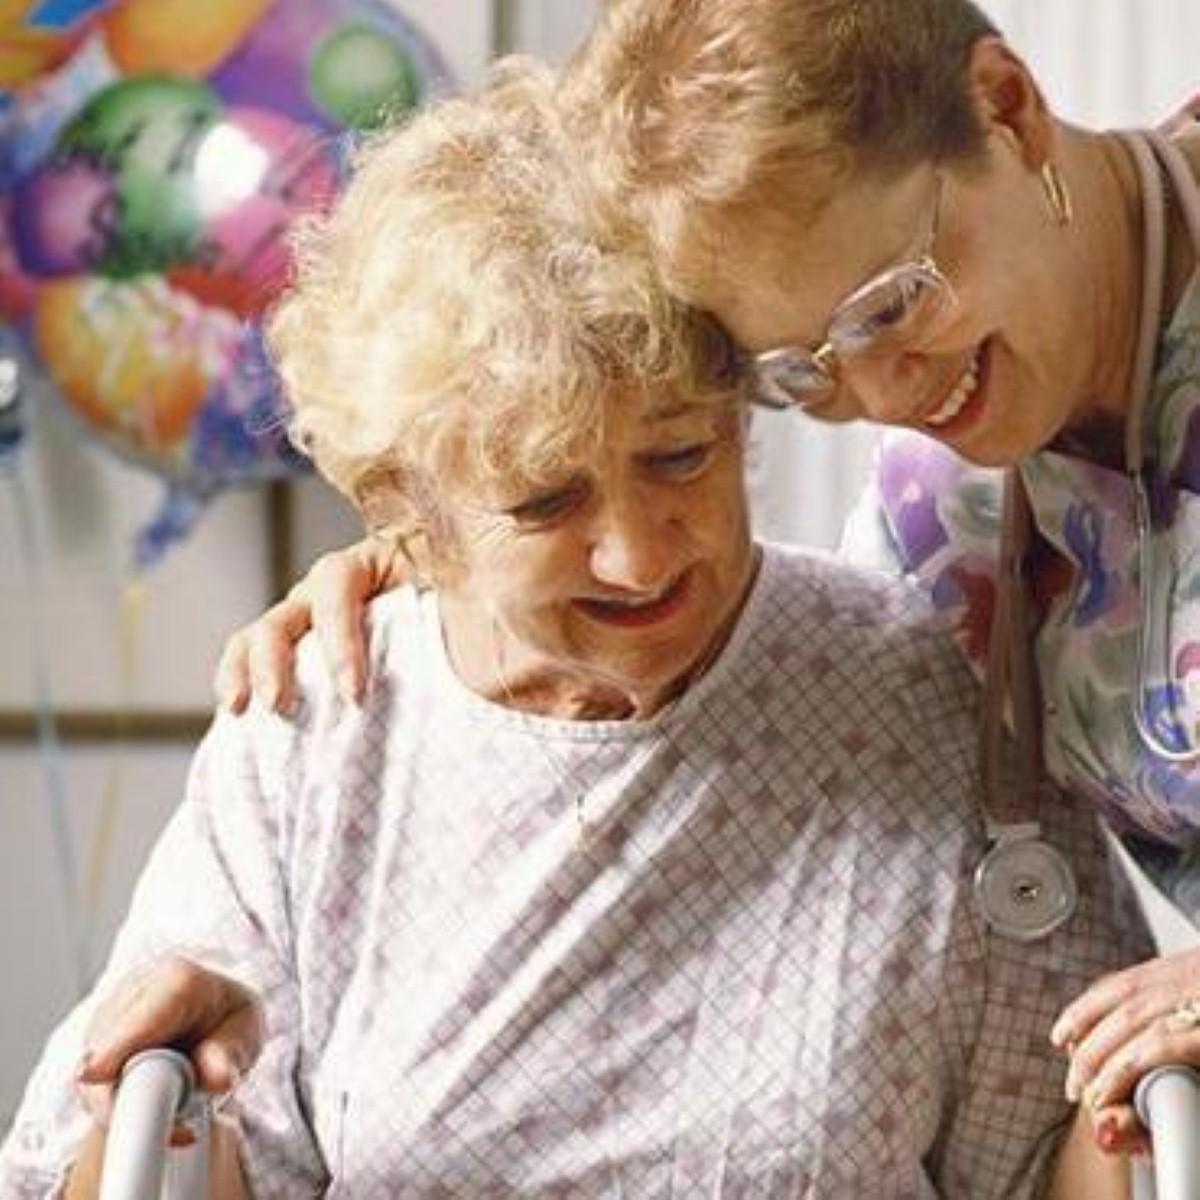 Dementia care investment 'could reduce hospital admissions'